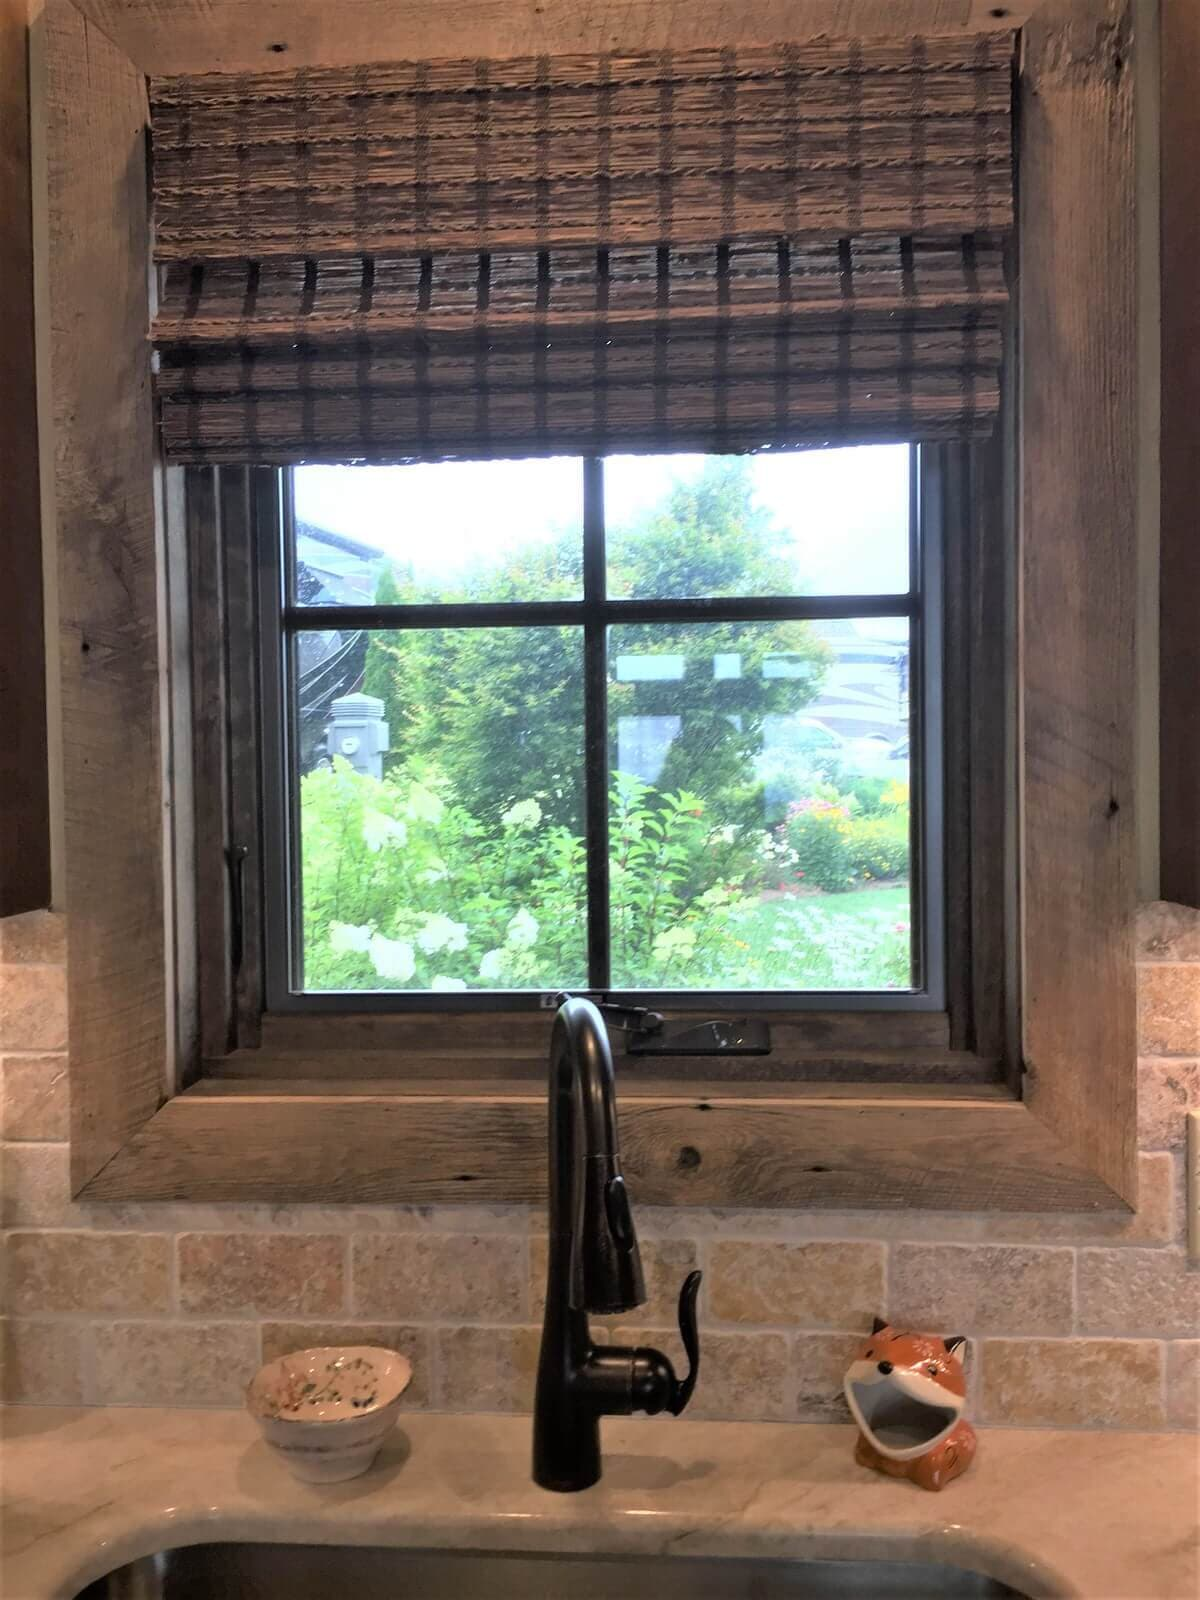 Rustic recessed window and  trim in a tile wall overlooking a garden